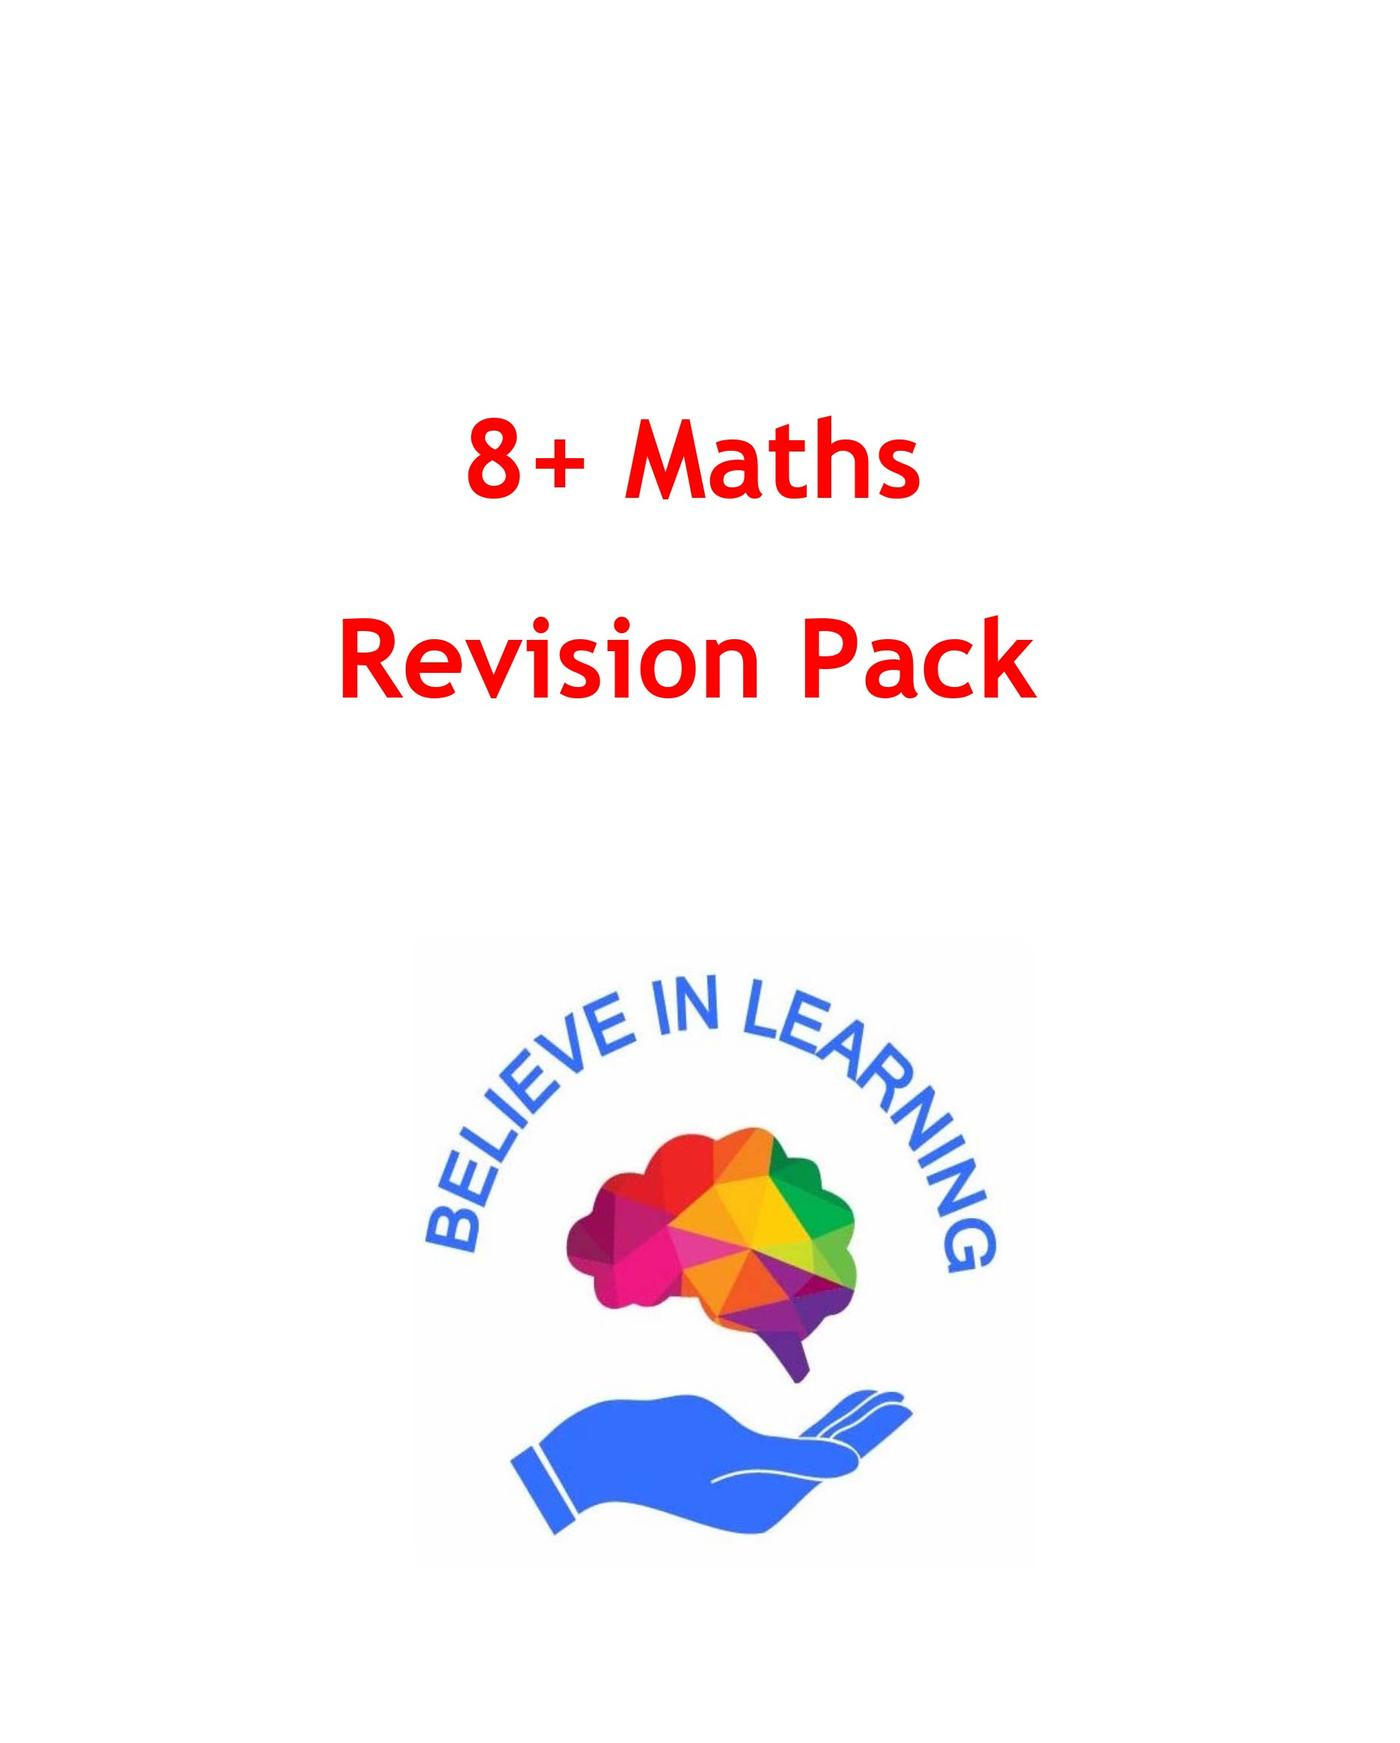 8+ Maths Revision Pack